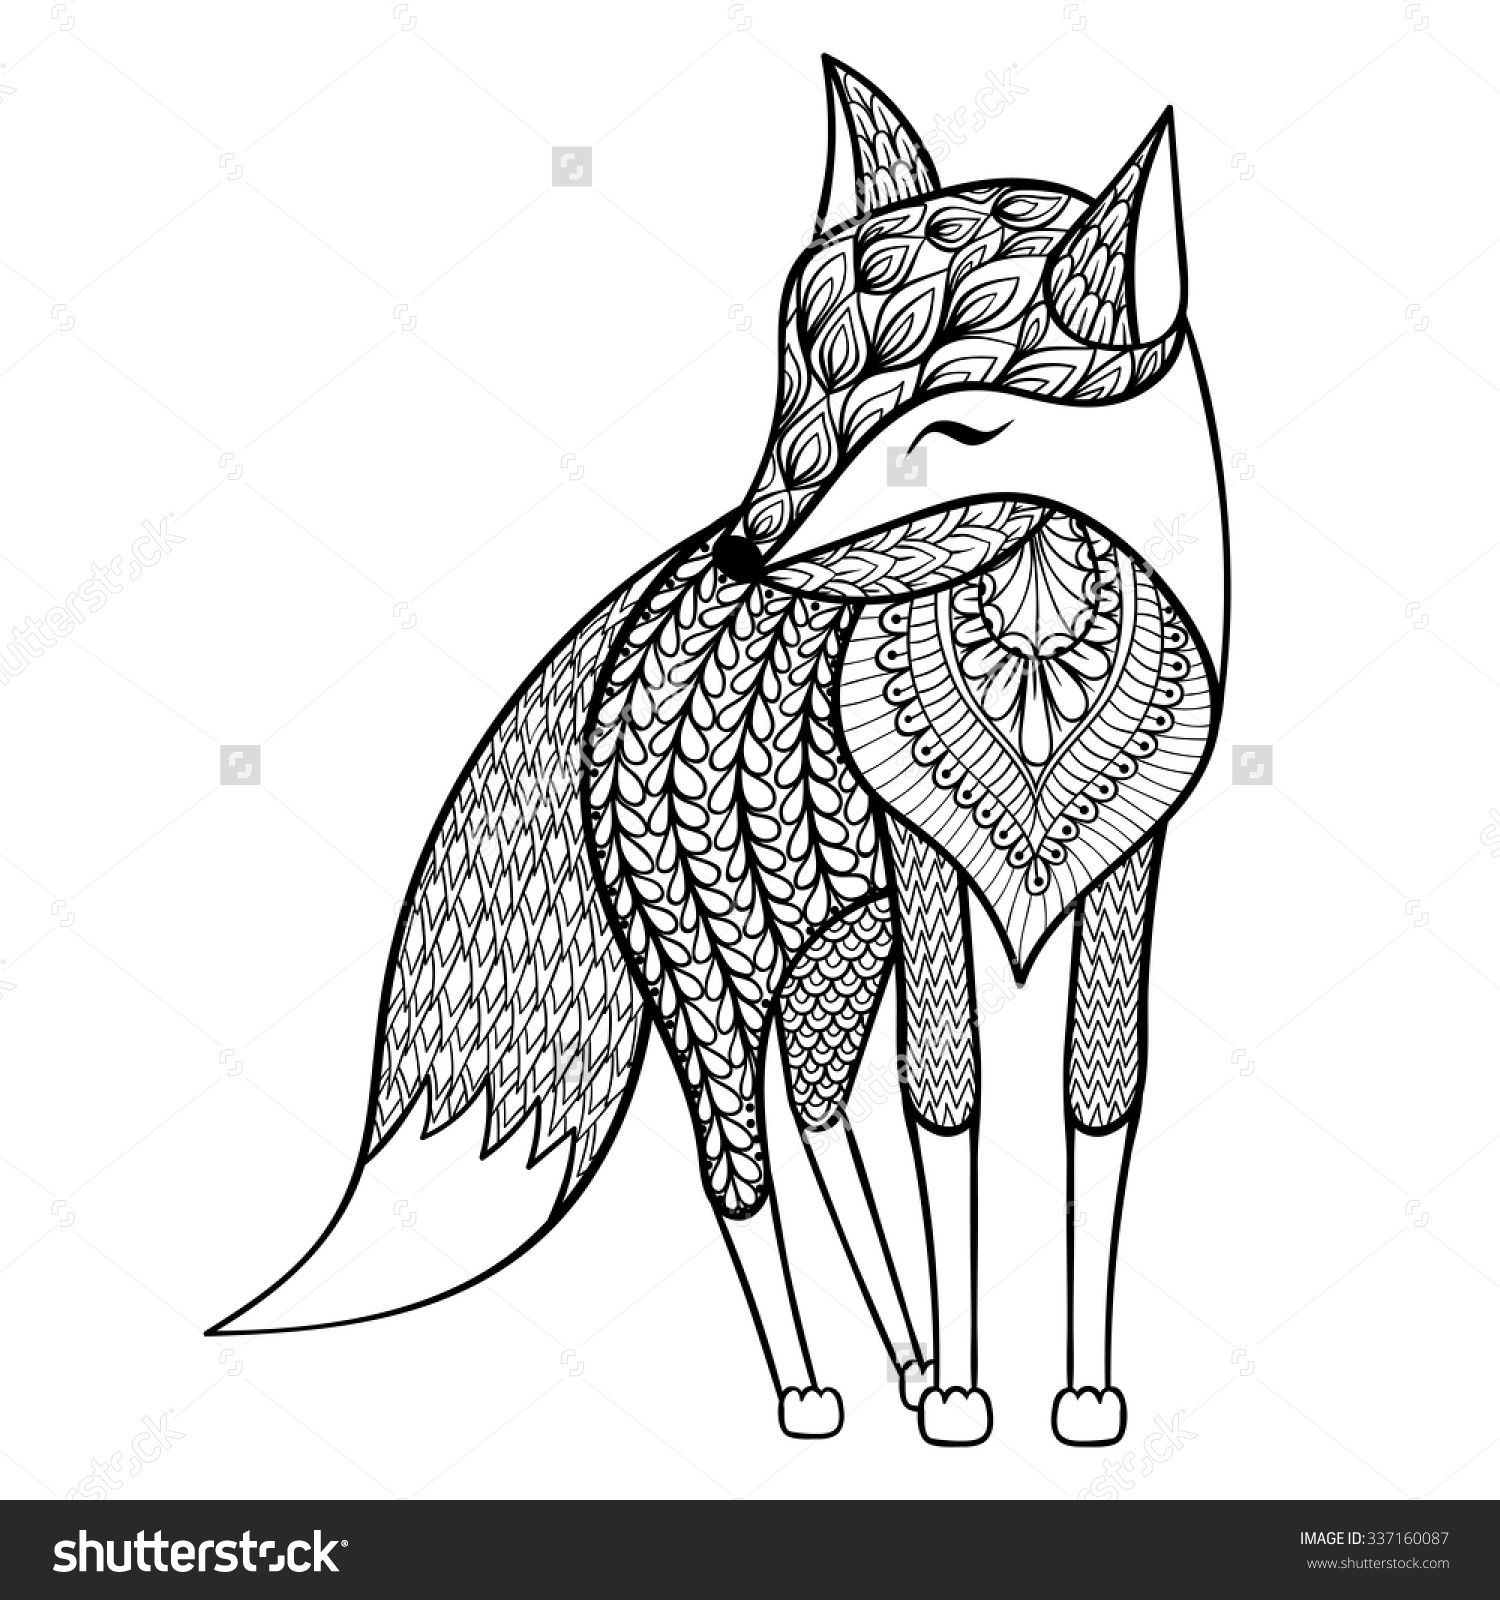 free printable coloring pages for adults zen : Fox Coloring Pages For Adults Google Search